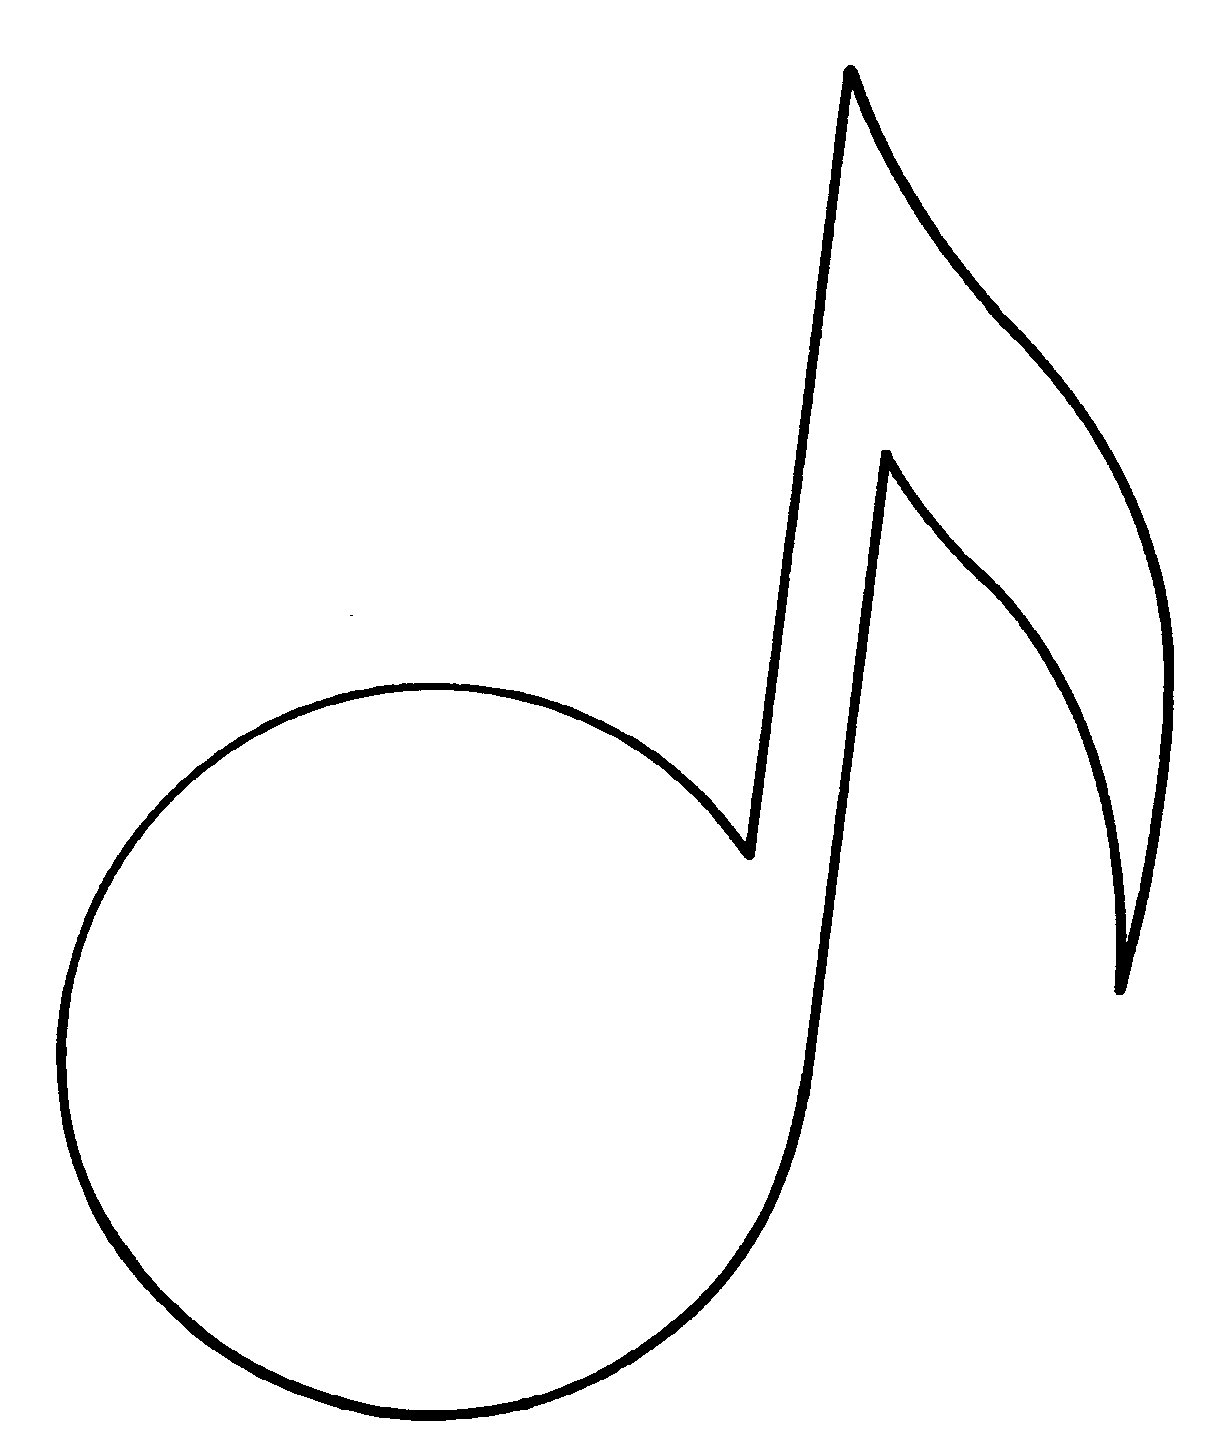 1232x1456 Draw Music Notes Printable 51 On Free Coloring Pages For Kids